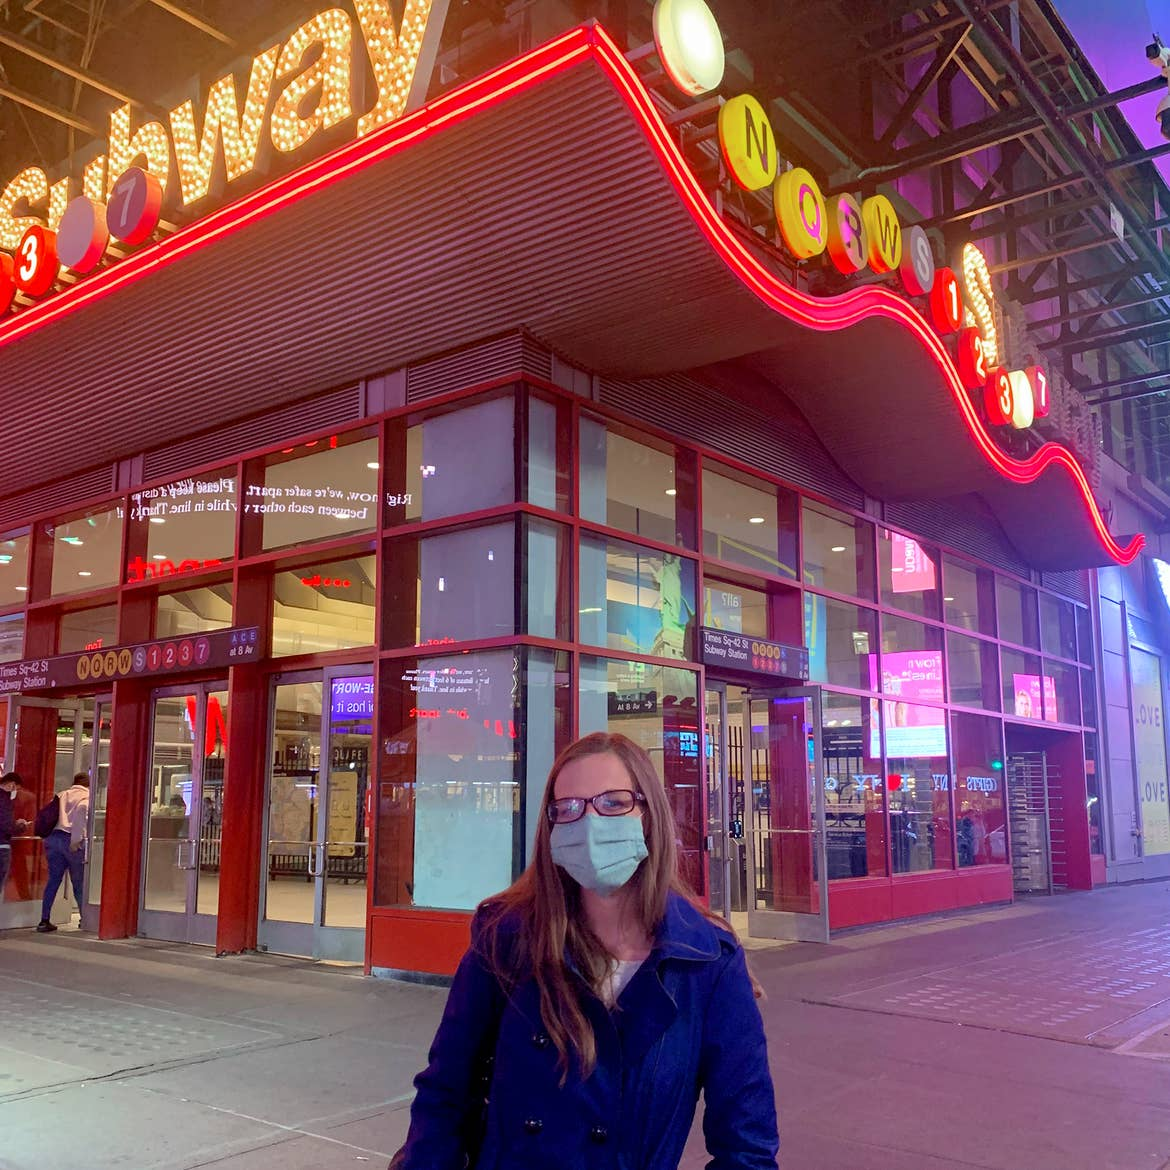 A Caucasian woman with long hair wears a pair of glasses, a safety mask and a jacket outside of the Times Square subway station in New York City at night.